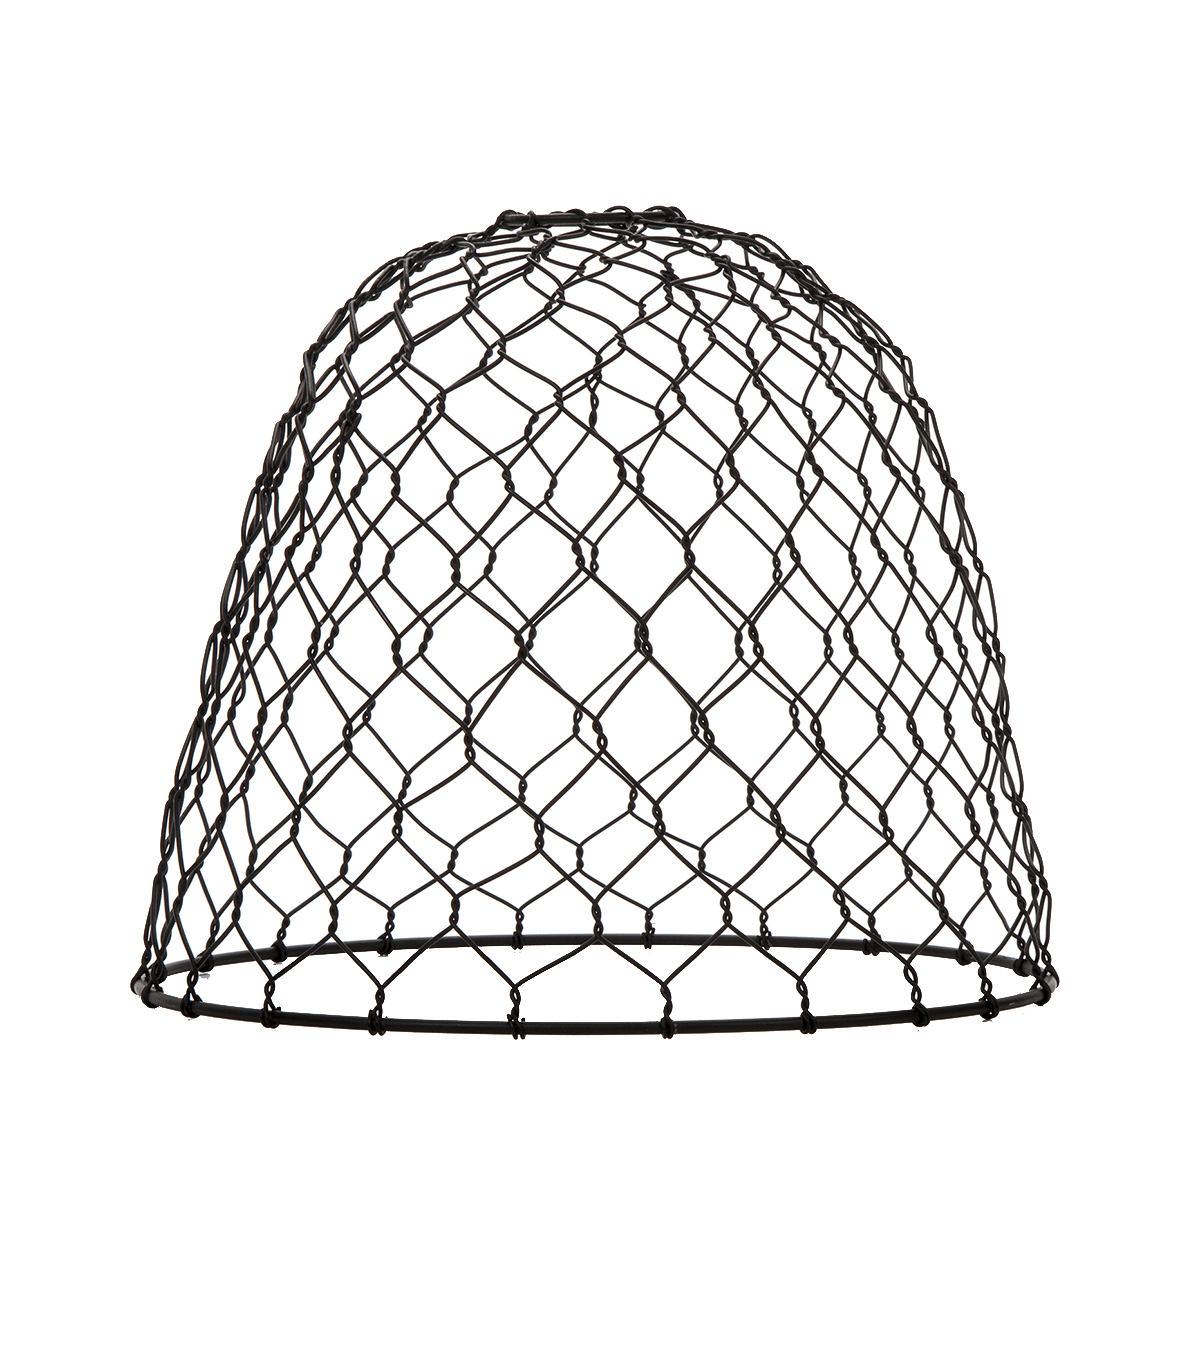 Darice metal chickenwire dome lampshade black joann darice metal chickenwire dome lampshade black greentooth Gallery